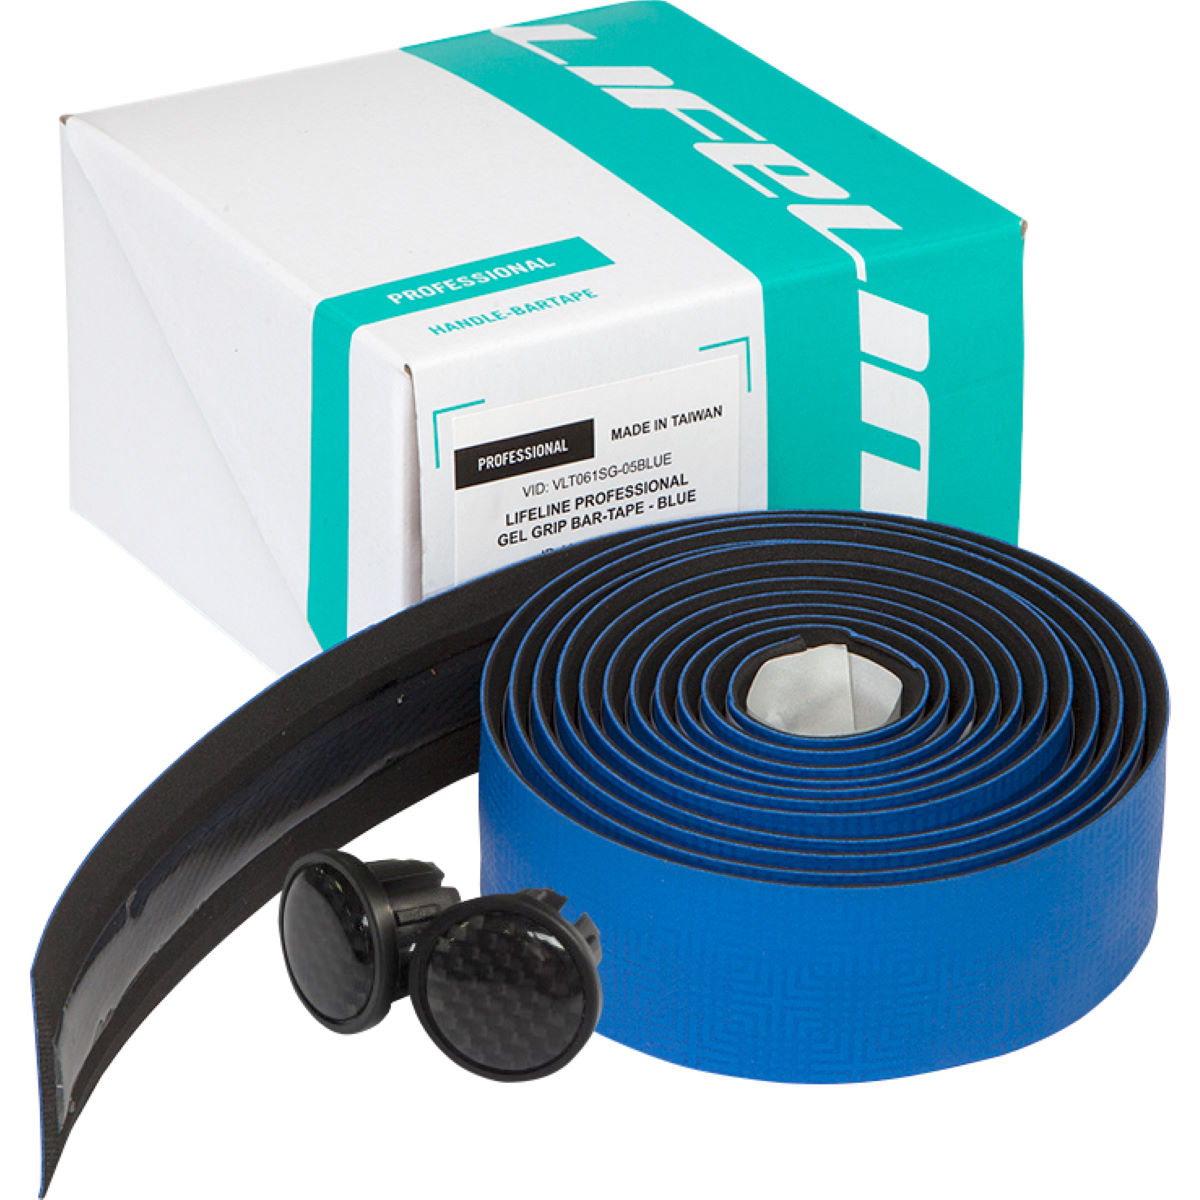 LifeLine Professional Bar Tape